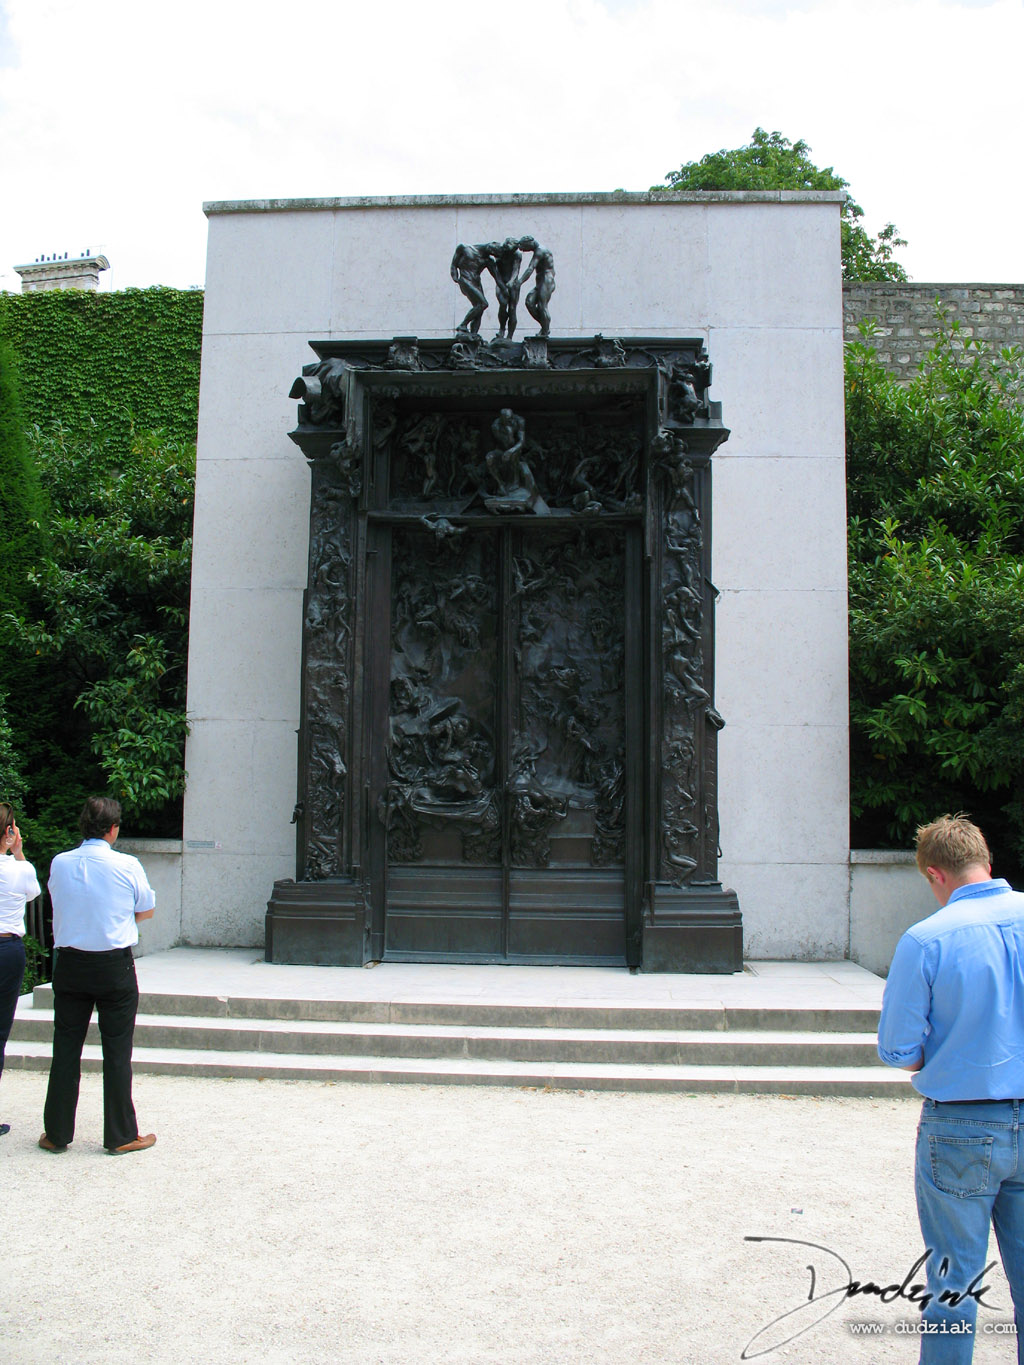 "Picture of ""The Gates of Hell"" (La Porte de l'Enfer) sculpture by Rodin in the Rodin Museum (Musee Rodin) in Paris, France."